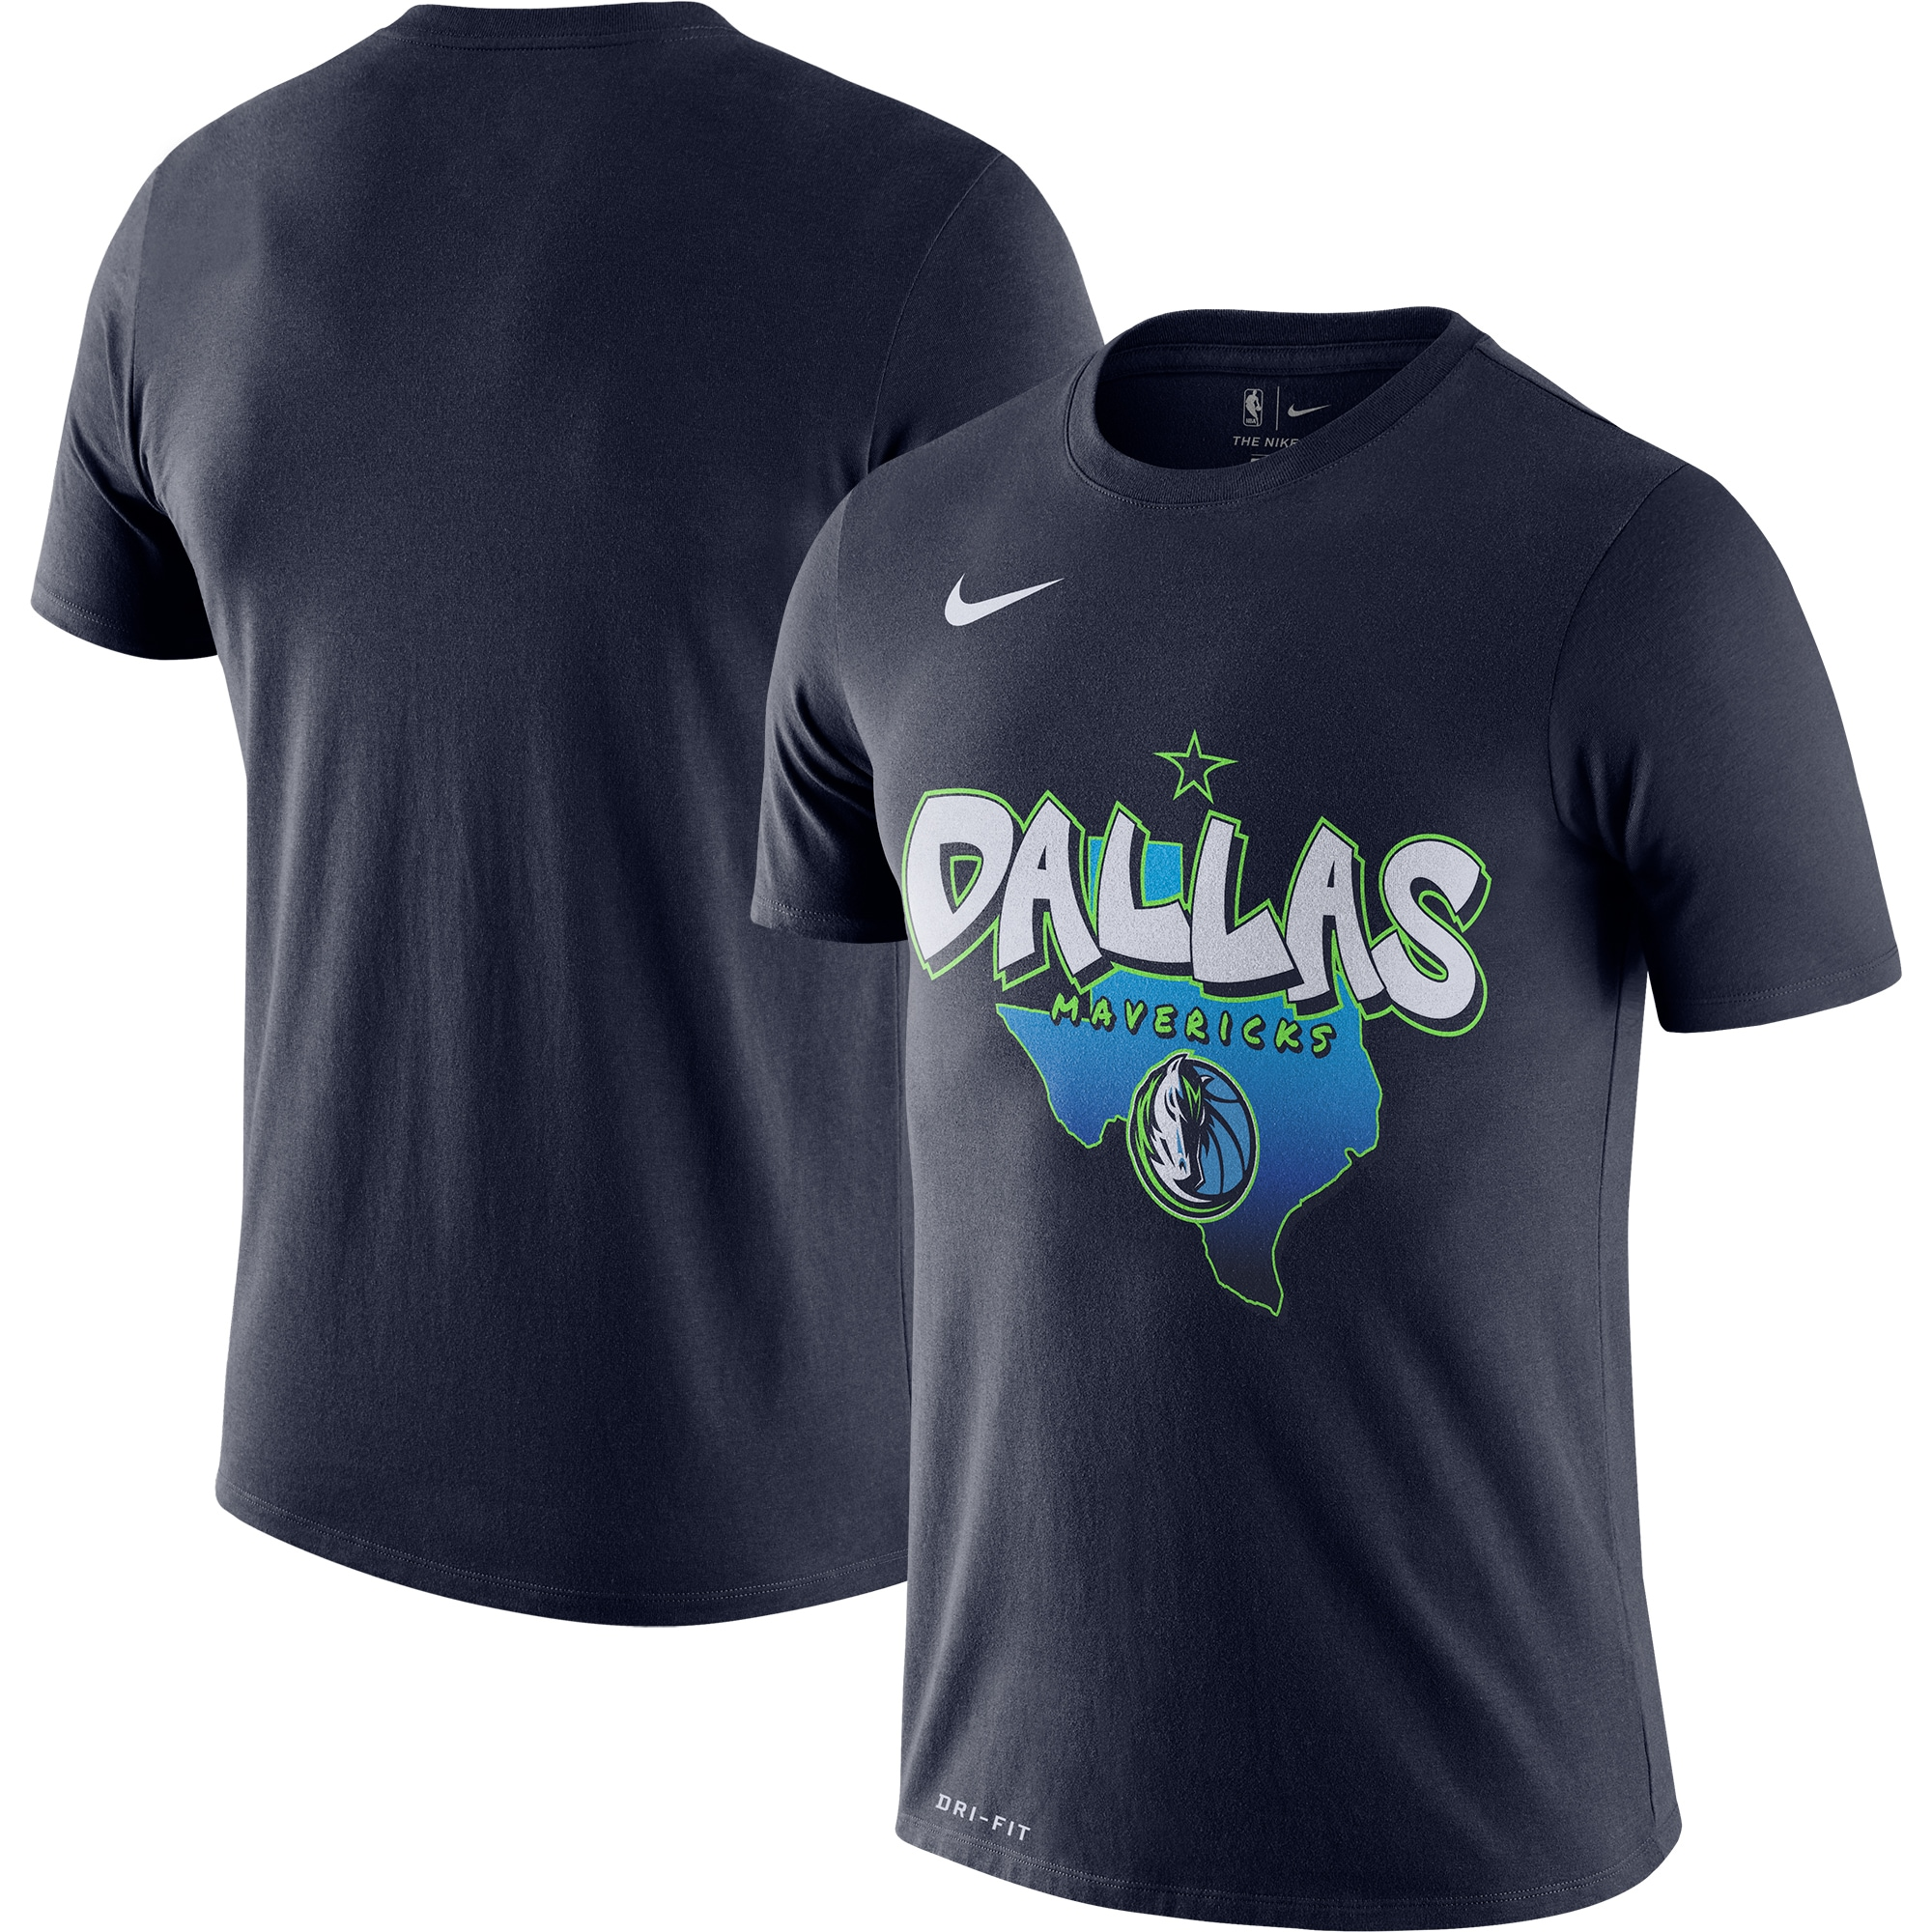 Dallas Mavericks Nike 2019/20 City Edition Hometown Performance T-Shirt - Navy